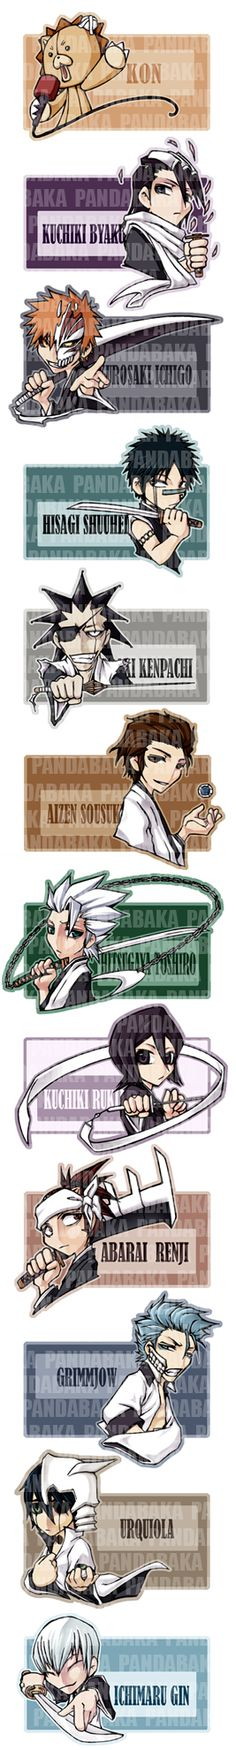 You spelled Ulquiorra's name wrong!! Idiot!!!